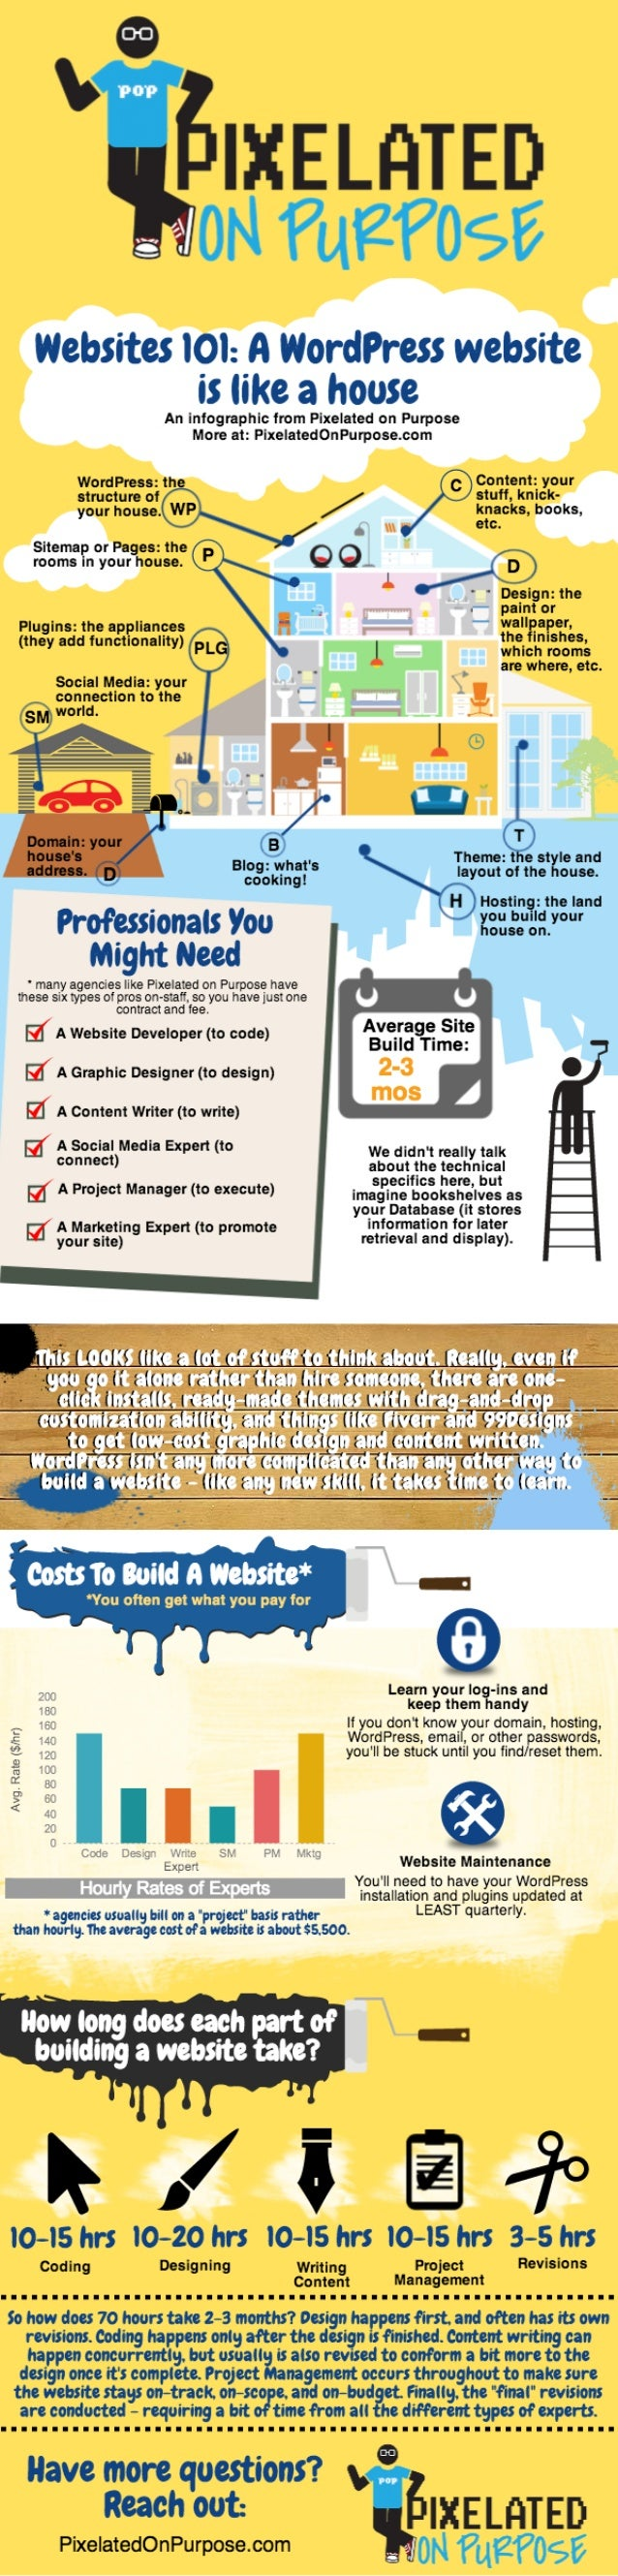 A Website is Like a House - an Infographic from Pixelated on Purpose